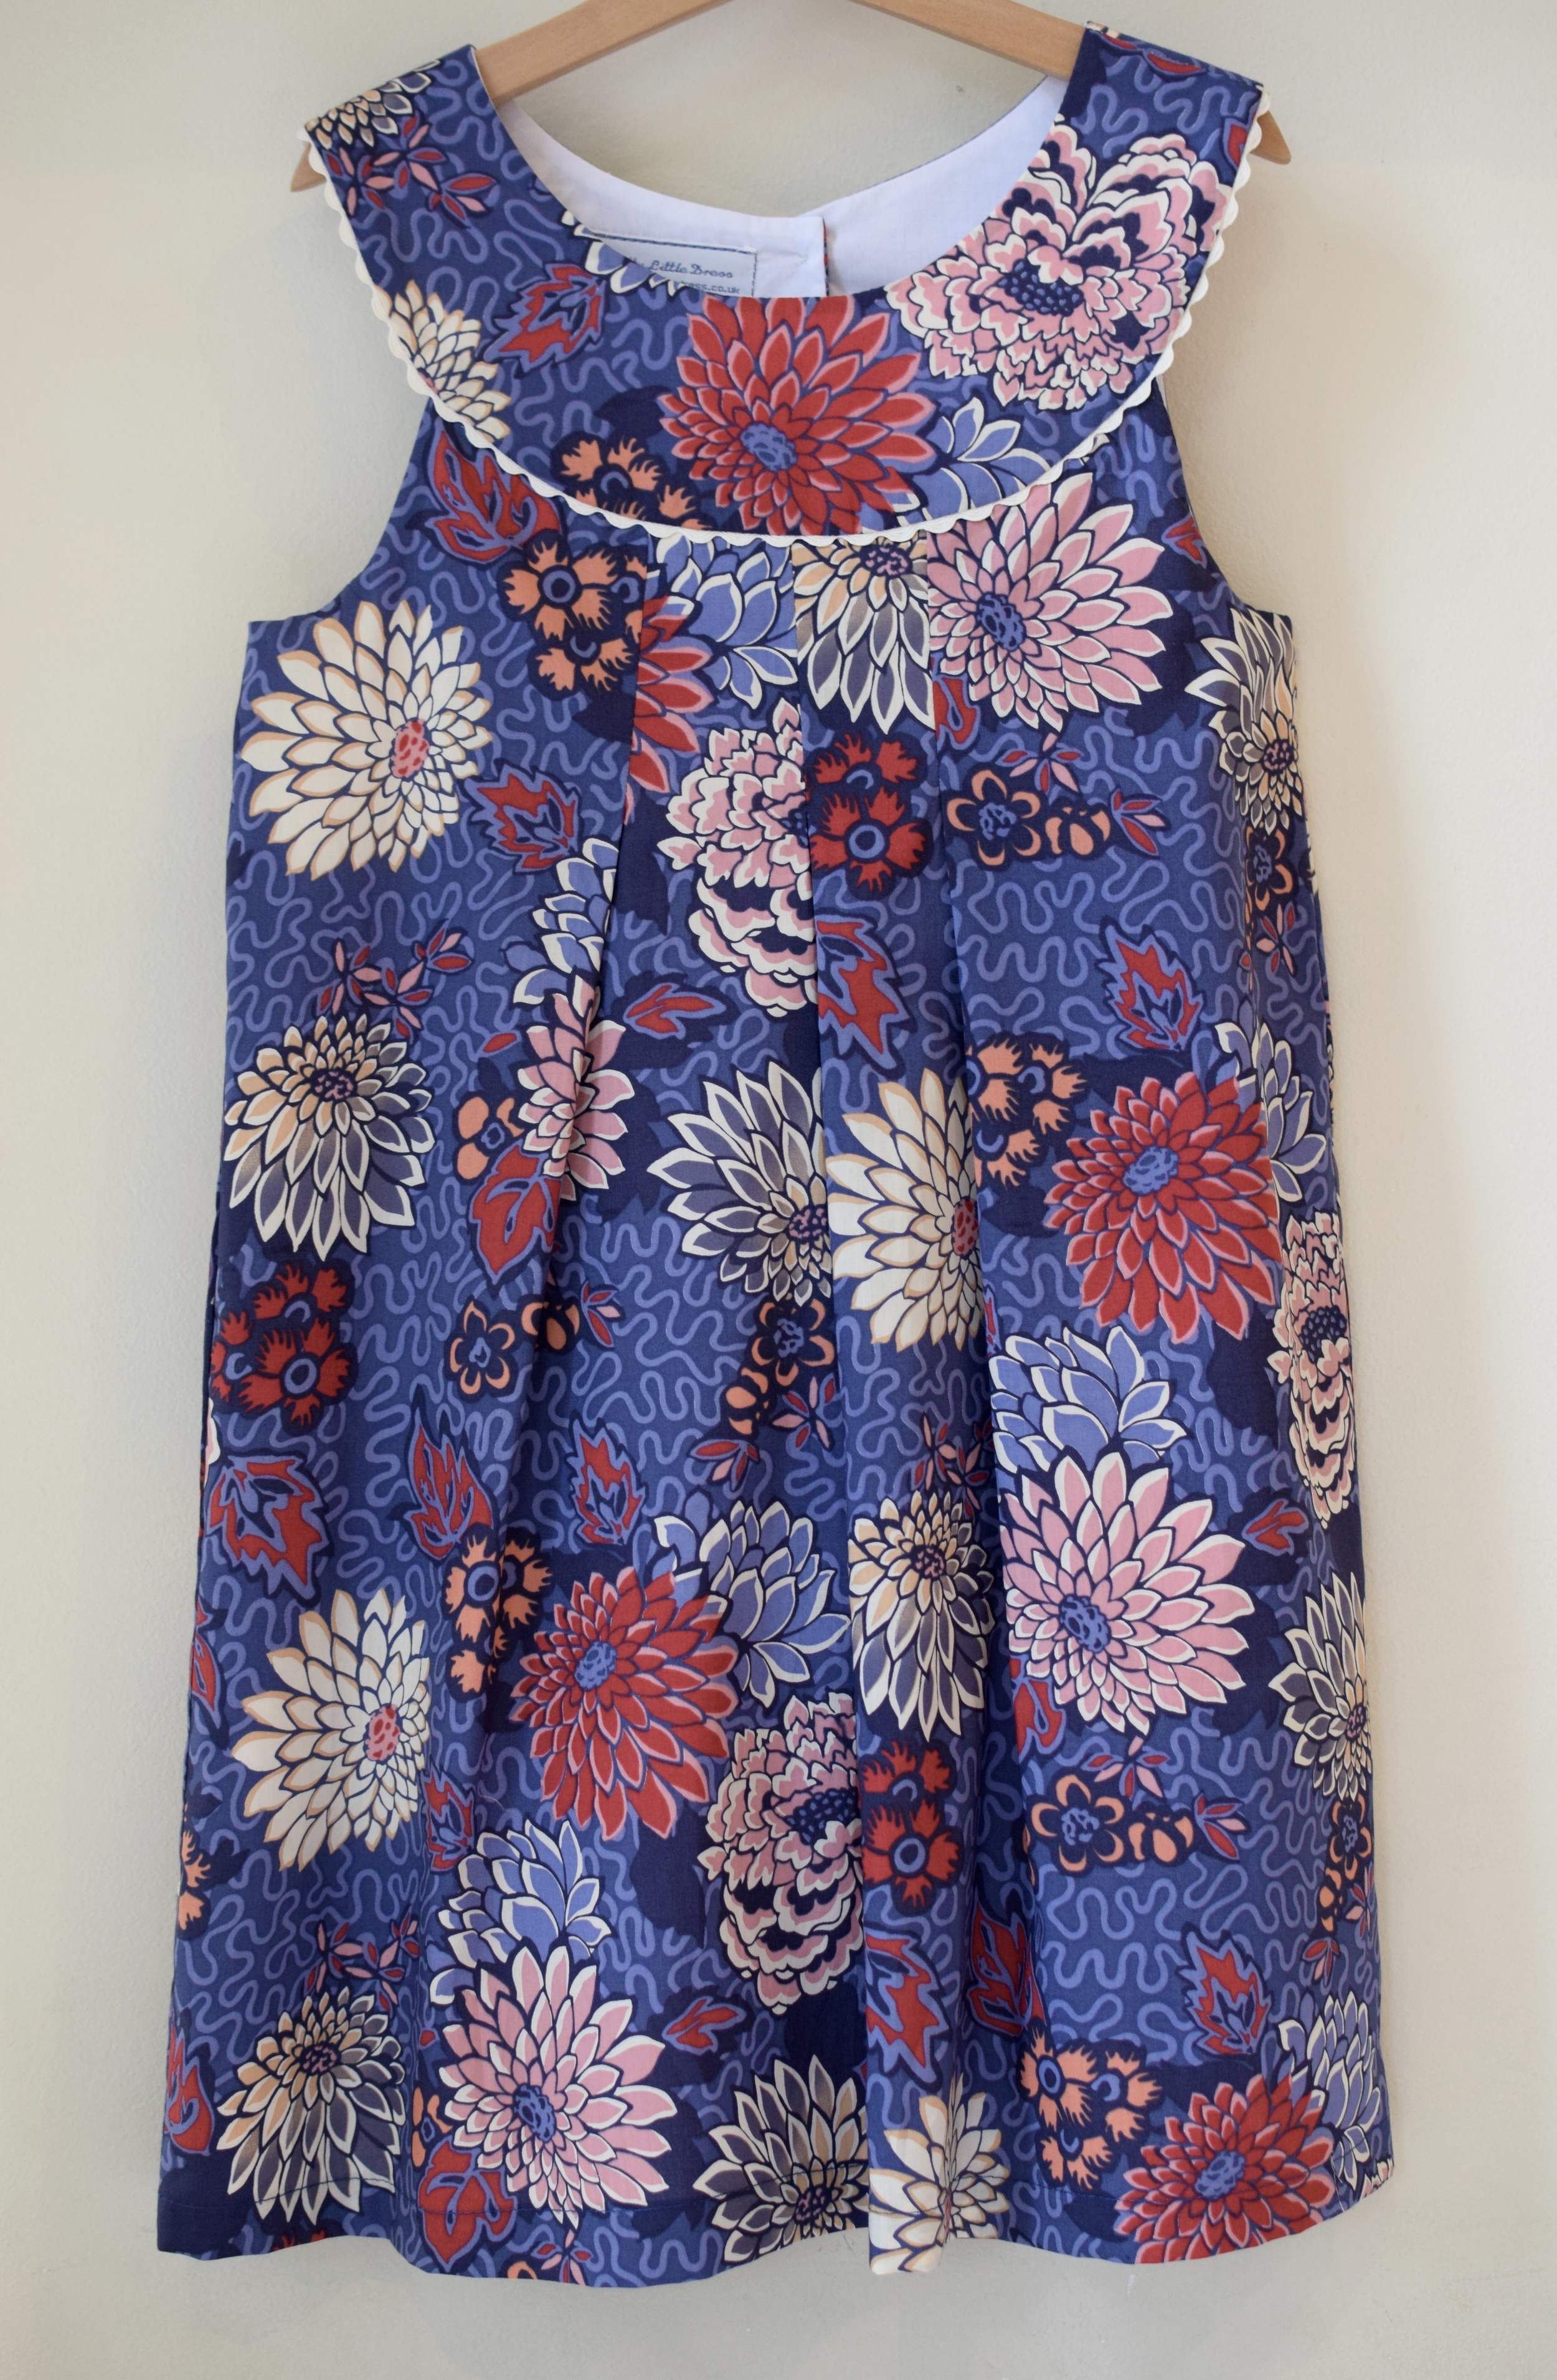 Meandering Chrysanthemums pink and blue Dress £43   Liberty print sleeveless dress with a round neck, fully lined and contrasting rick rack ribbon detail. Available exclusively in size 6y.